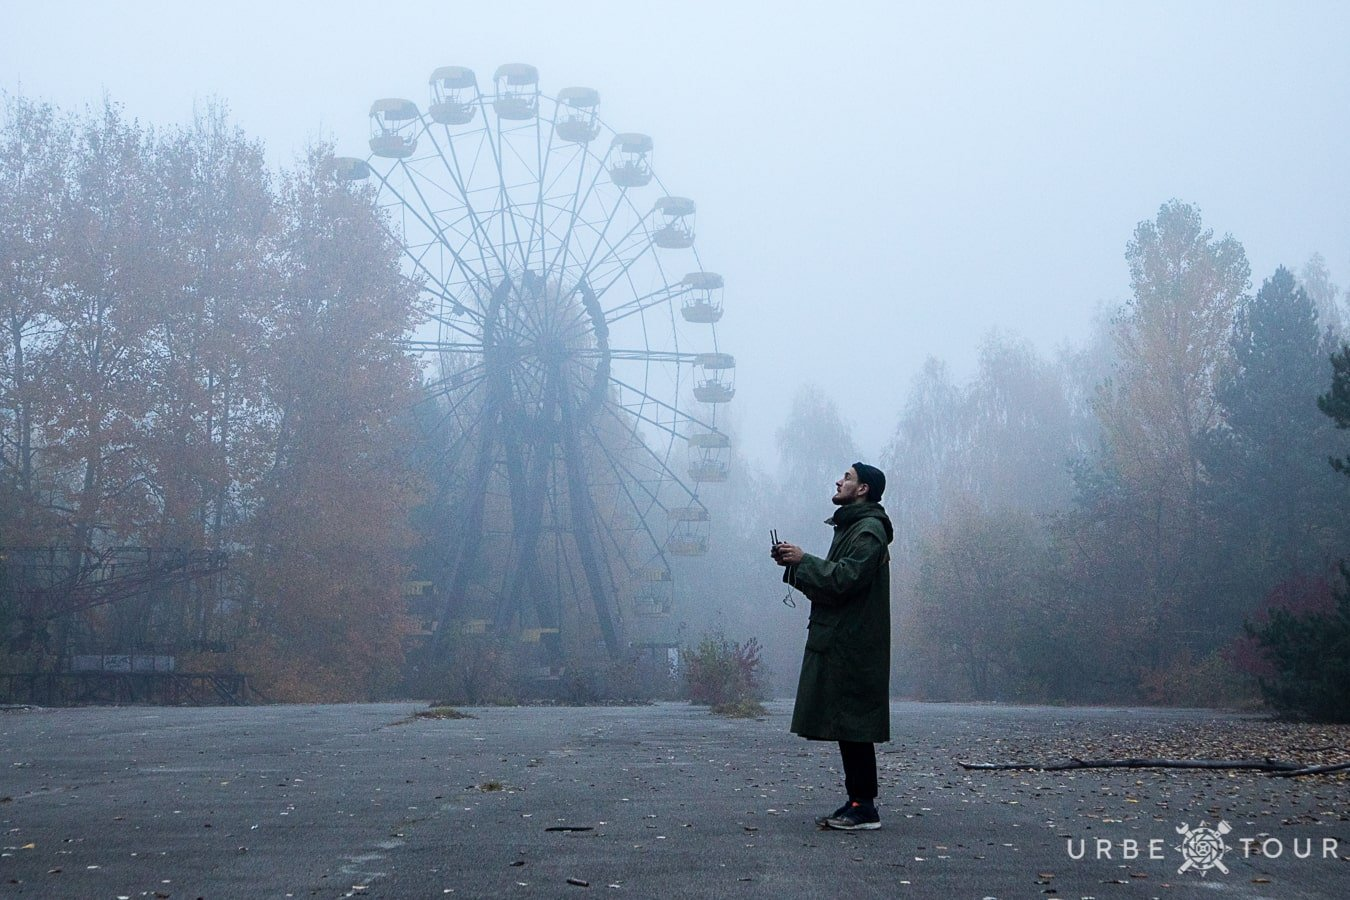 drone pilot next to Ferris wheel in abandoned city